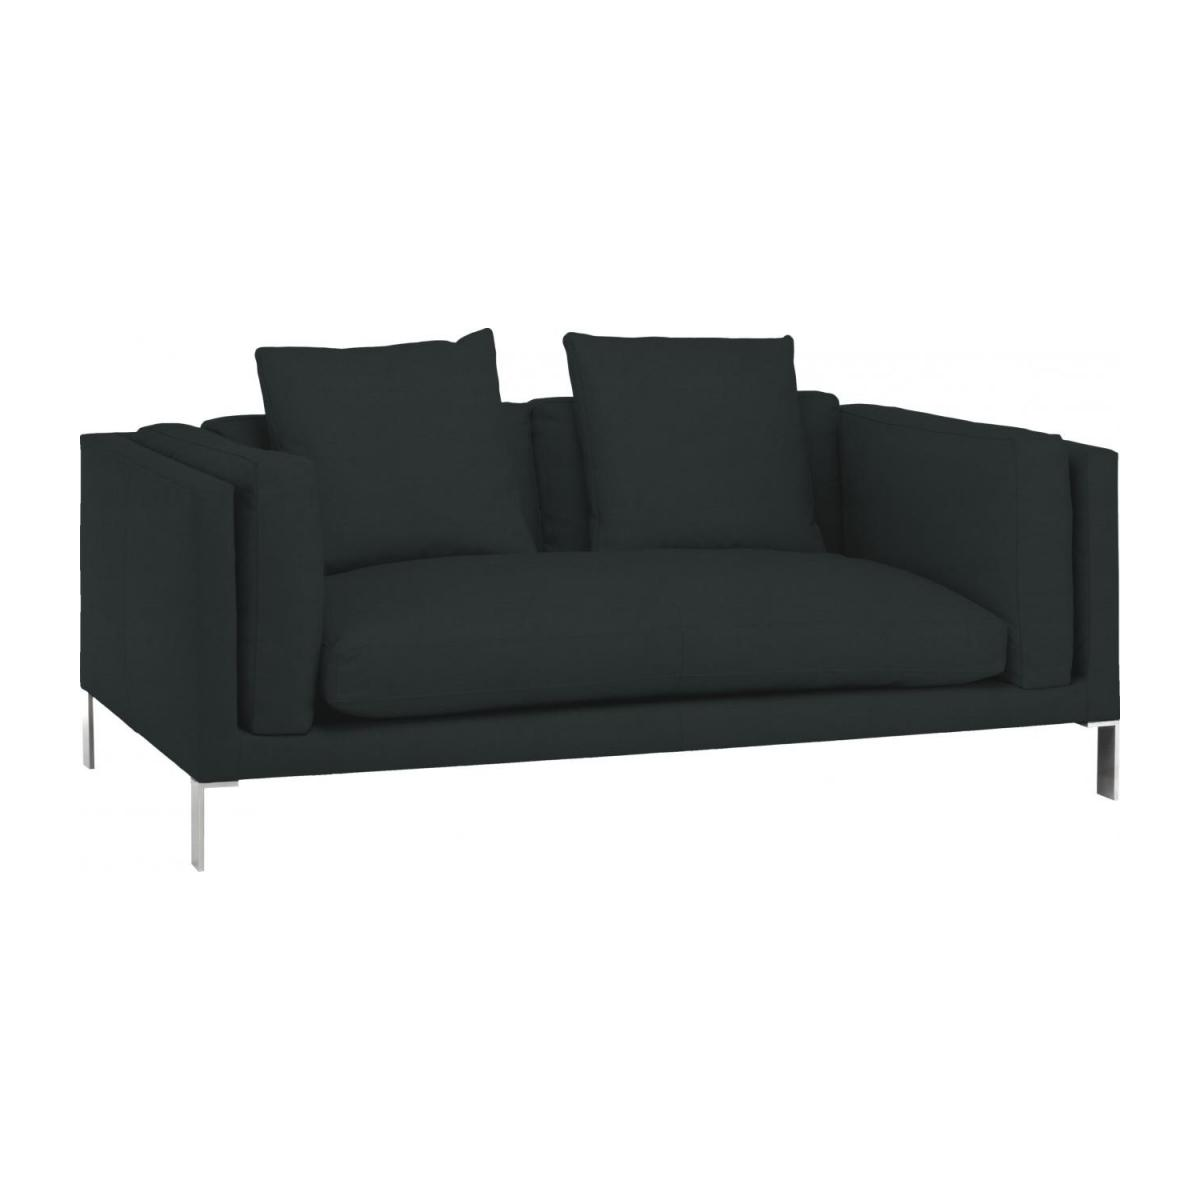 Leather 2 seater sofa n°1